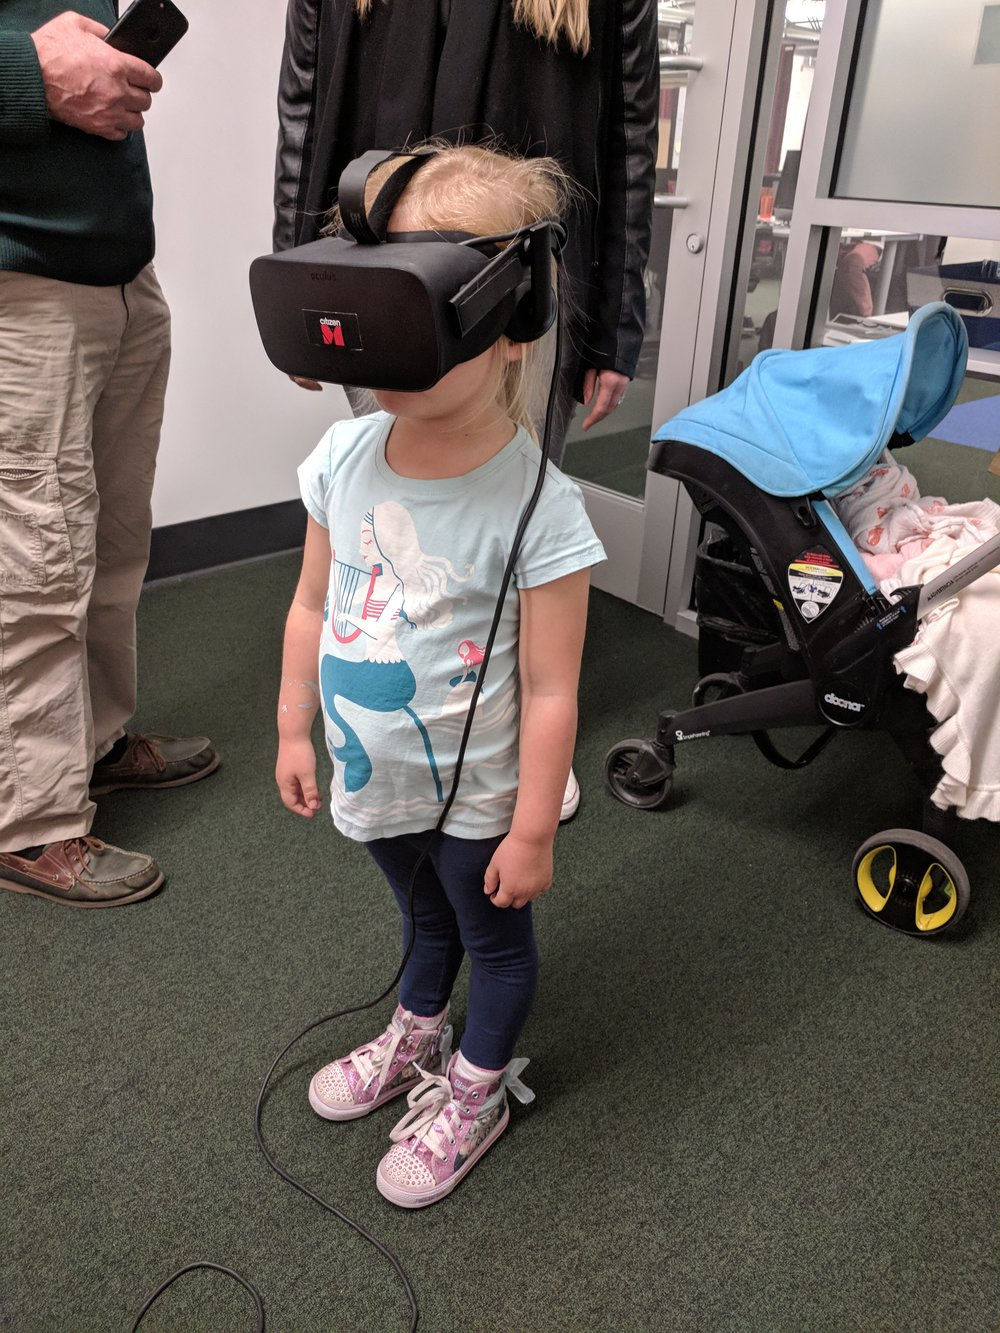 Tom's daughter visiting Boost VC and trying Tribe.